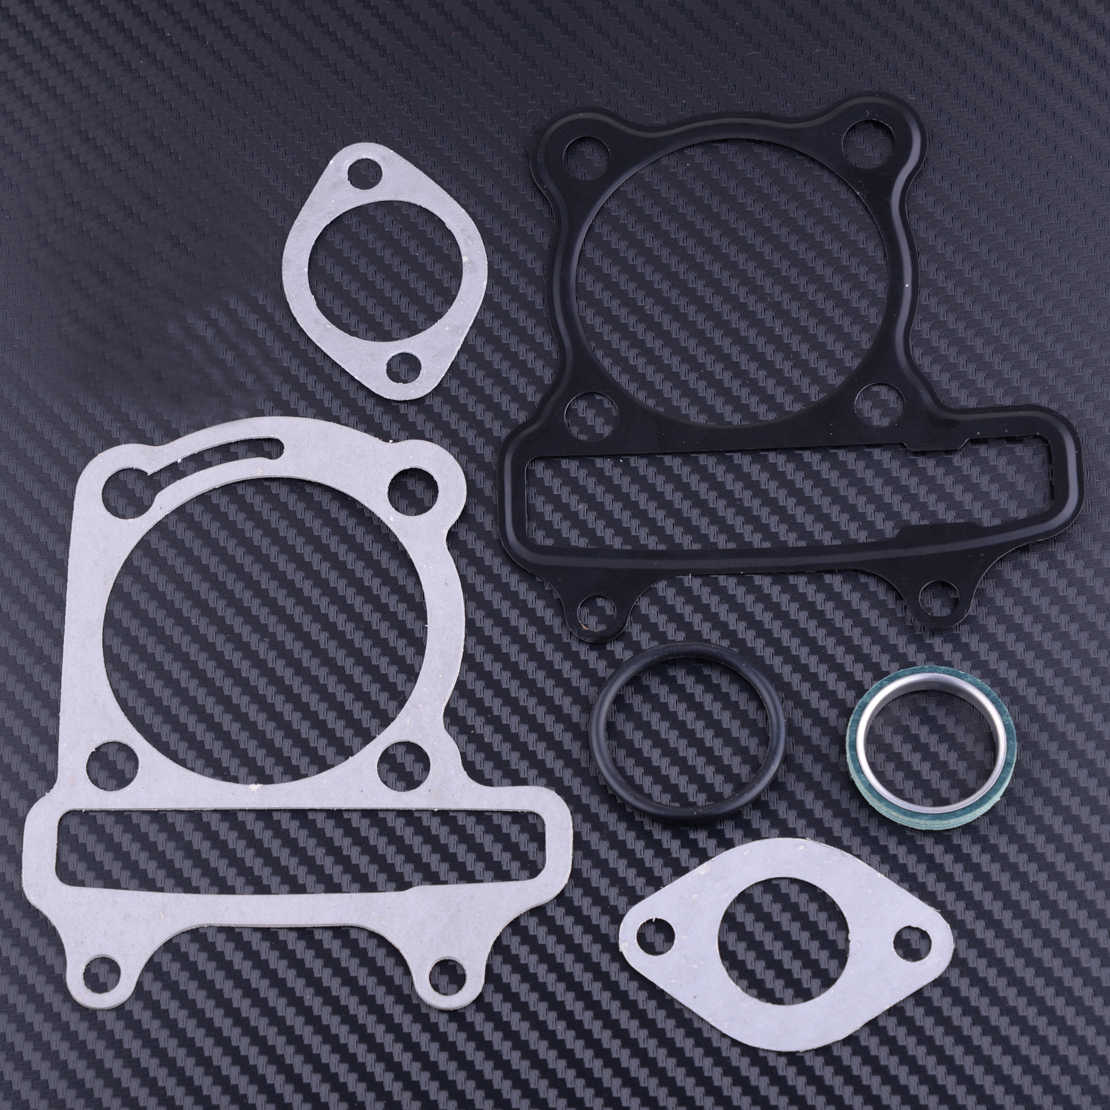 beler 7pcs Repair Engine Gasket Fit for GY6 150cc Go-kart ATV Scooter Moped Replacement Motorcycle Sealing Case Gasket Kit Atv